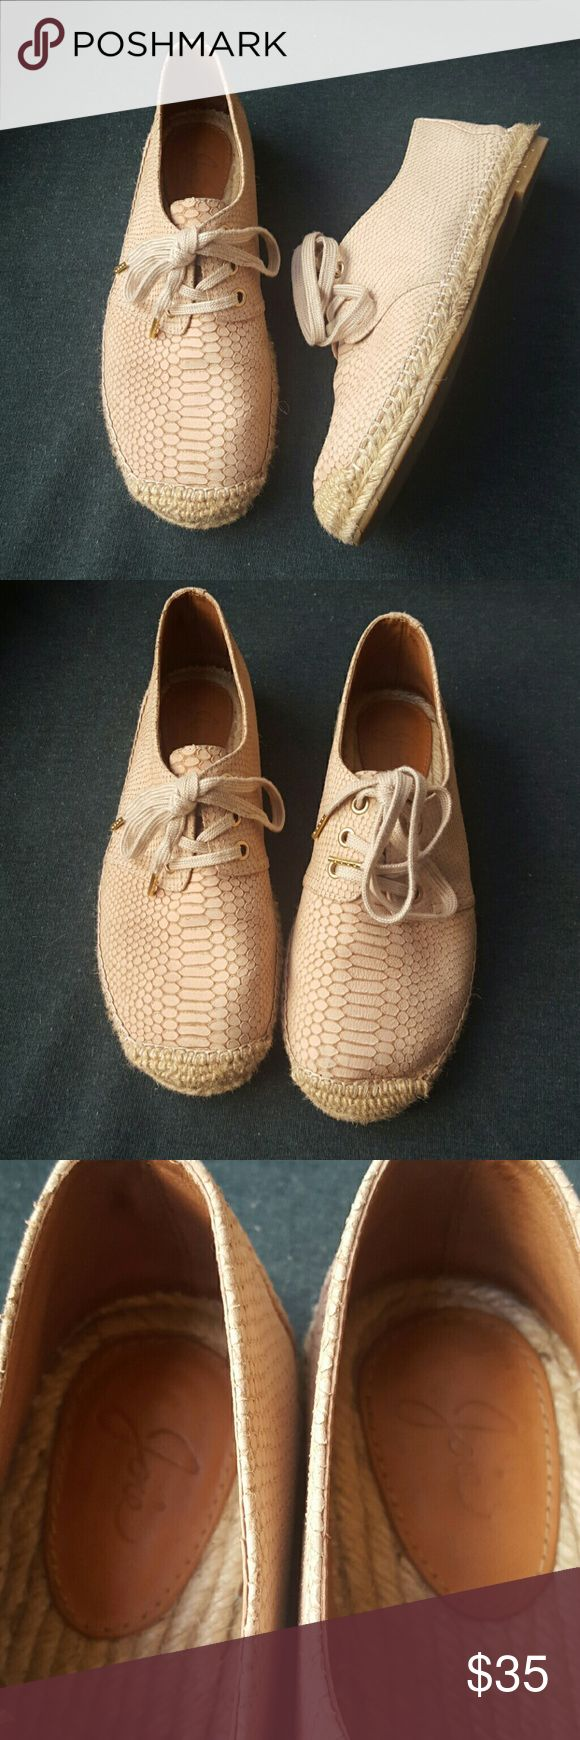 Joie shoes espadrilles beige leather 8 Joie espadrilles shoes. Beige snake skin pattern leather.  EUC.  Worn twice and only flaw is a bit of staining from driving on right back of hill see last pic. Rest in excellent condition. Joie Shoes Flats & Loafers